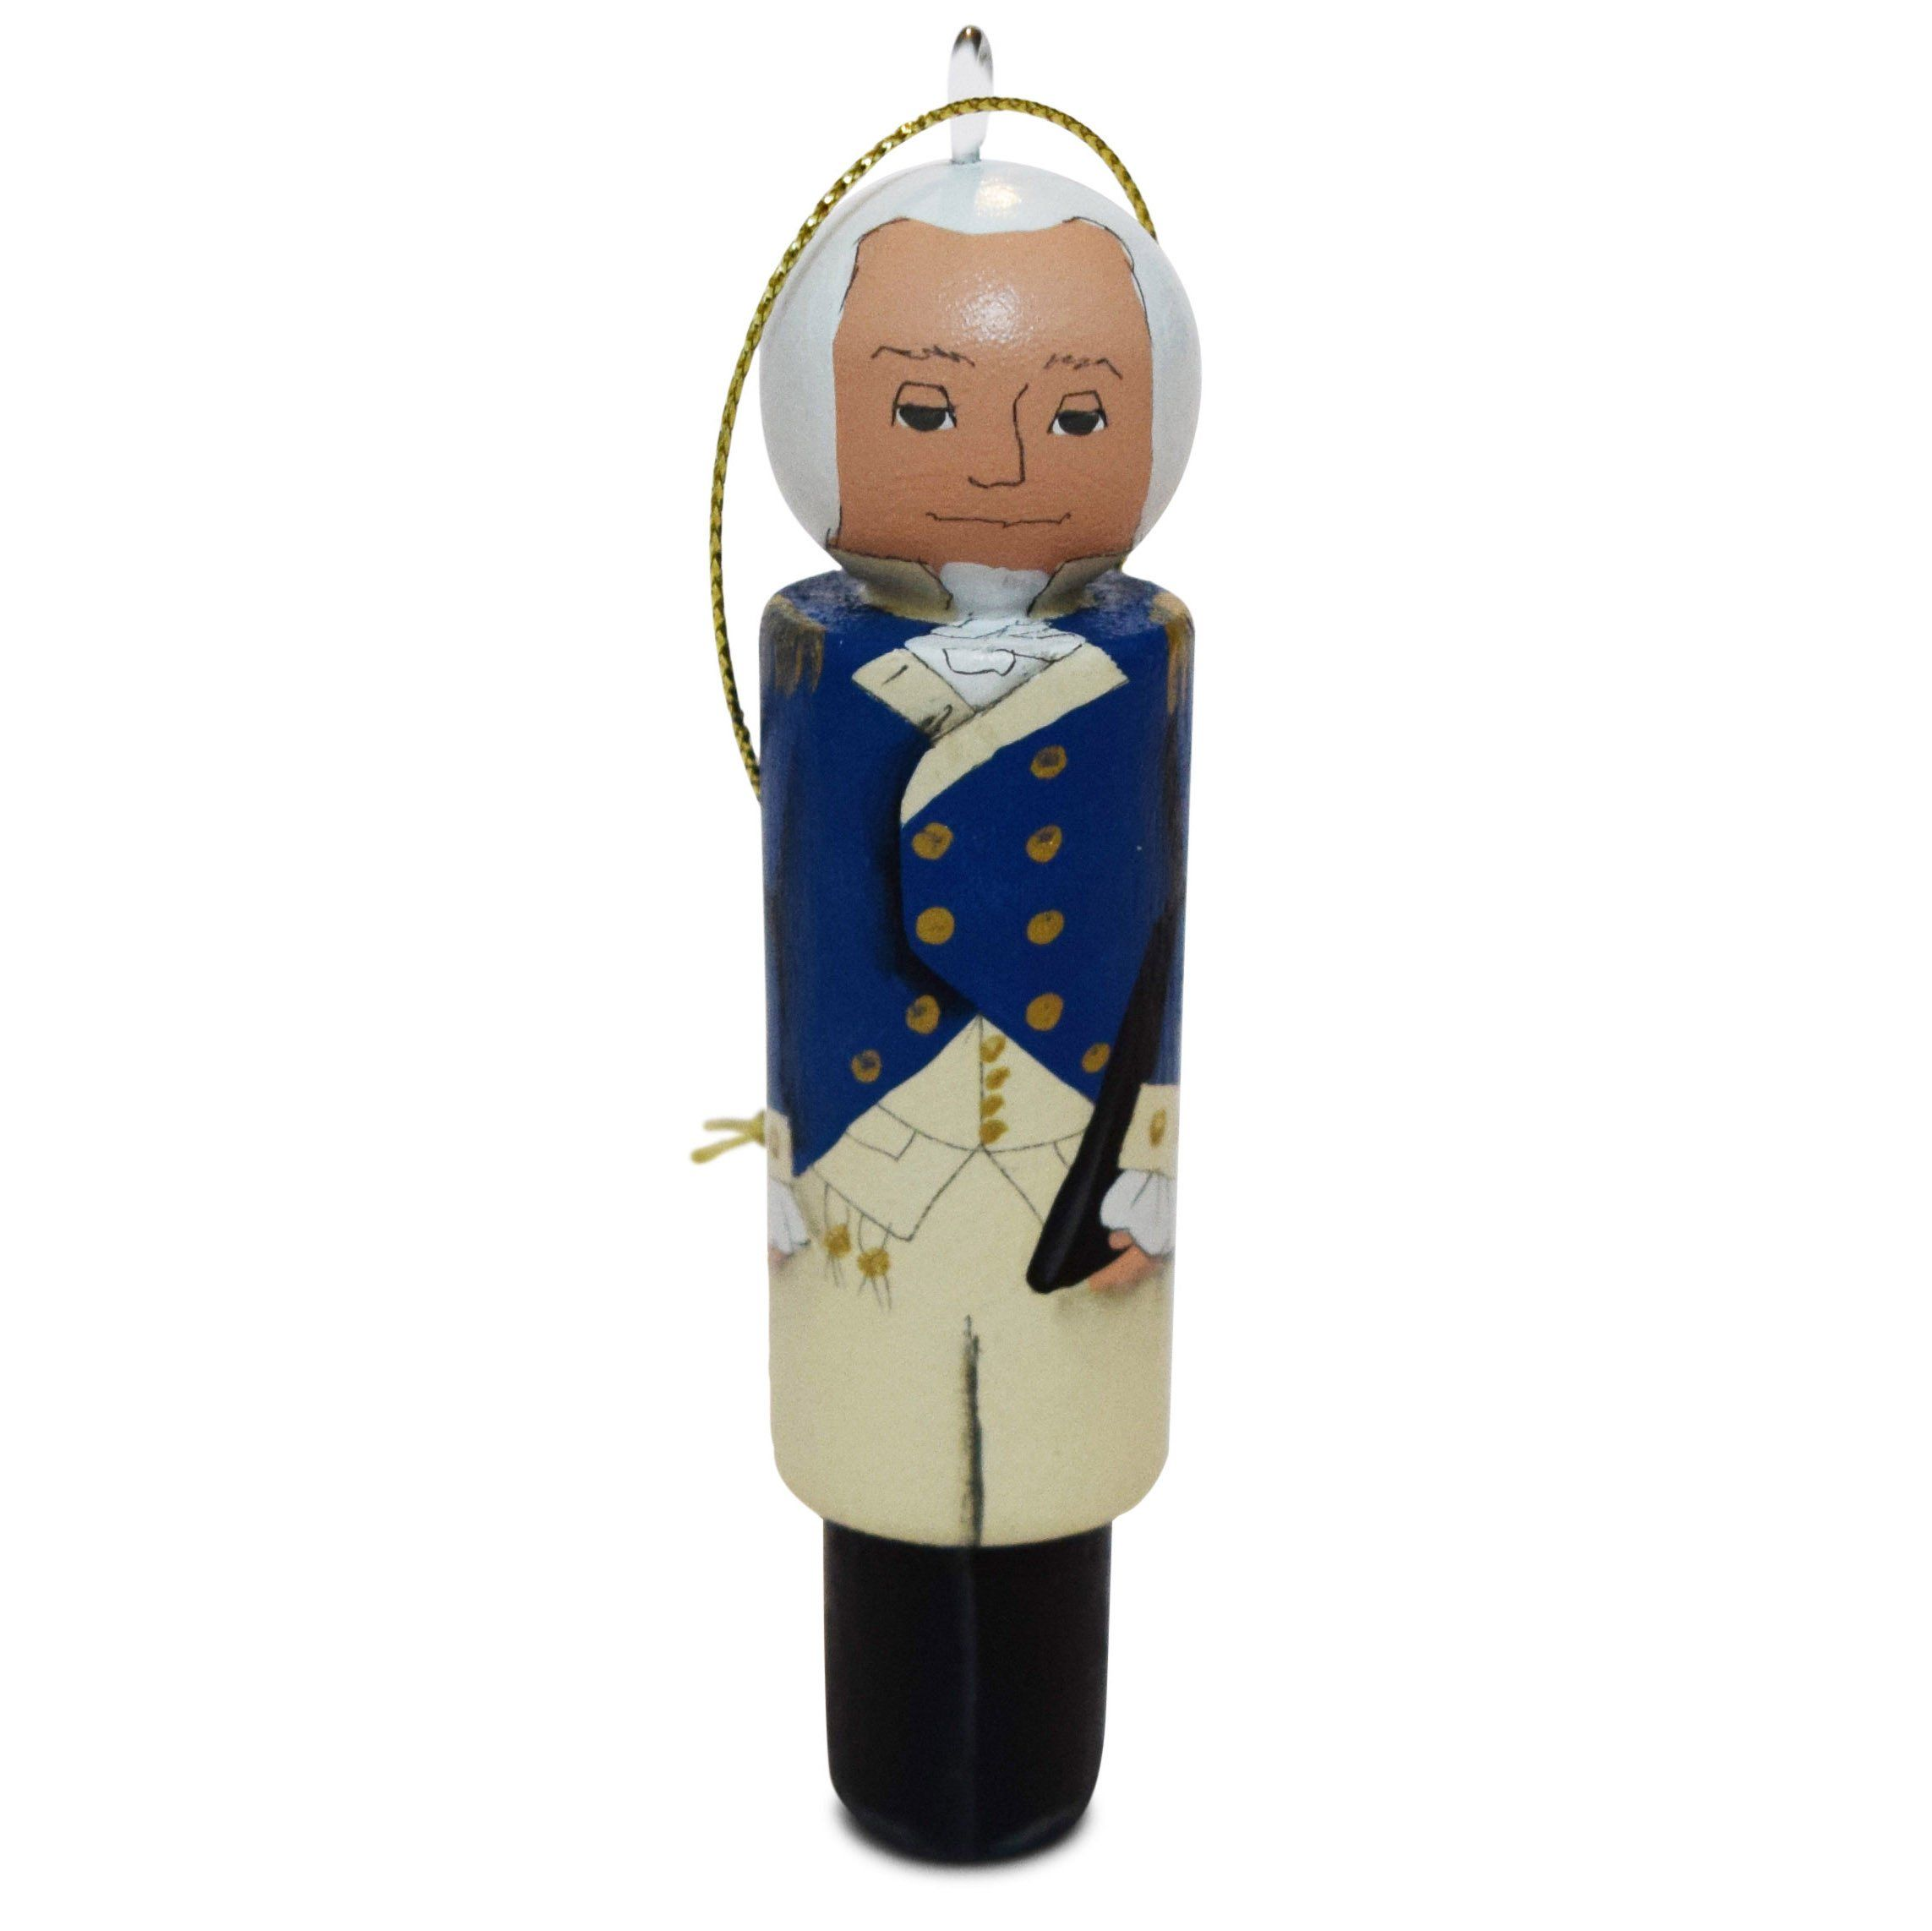 Handmade George Washington Ornament